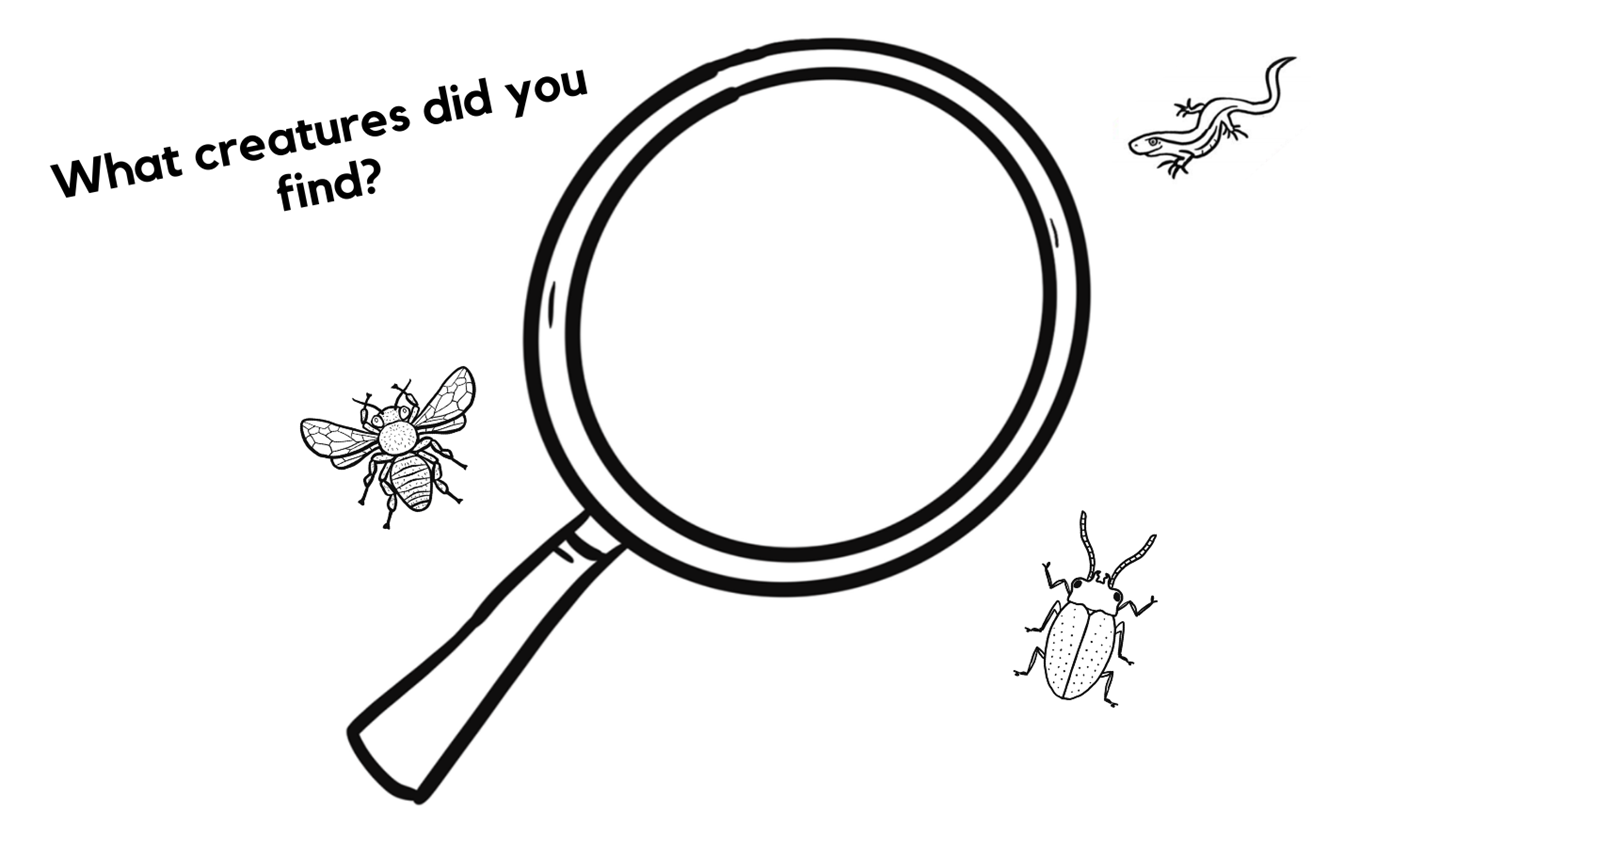 Magnifying glass with bugs around it and text: what creatures did you find?